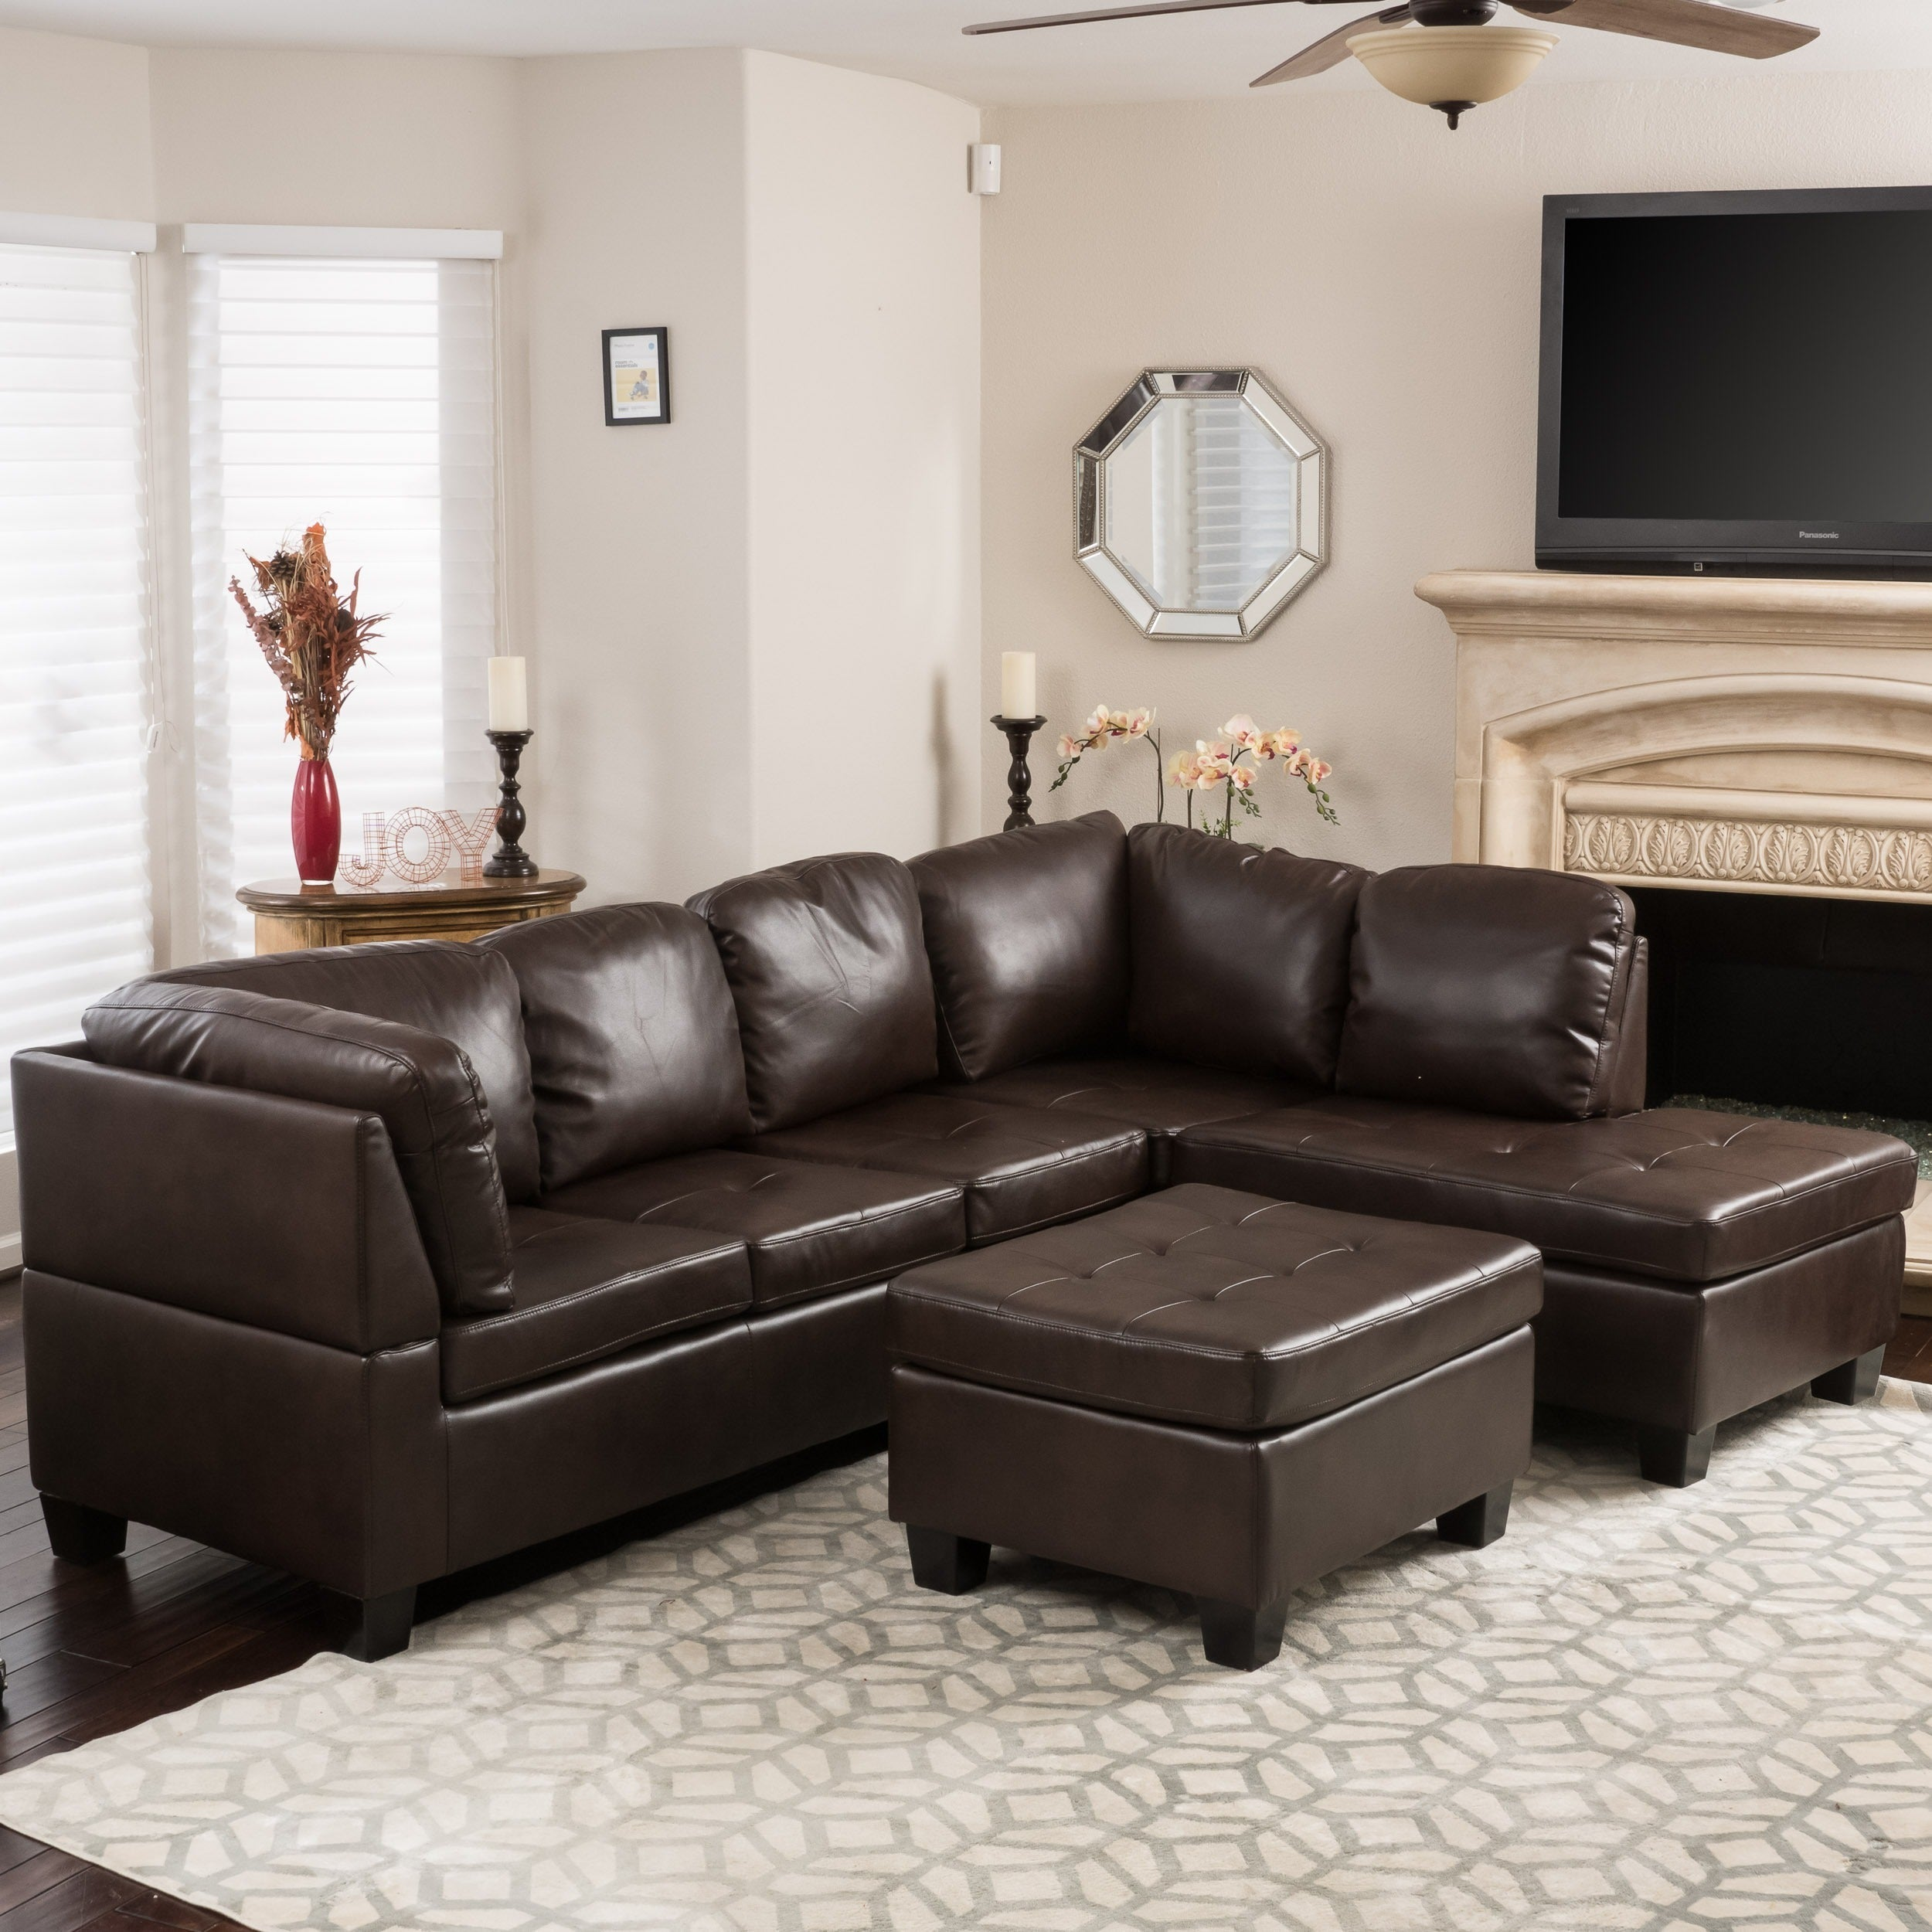 Canterbury 3 piece PU Leather Sectional Sofa Set by Christopher